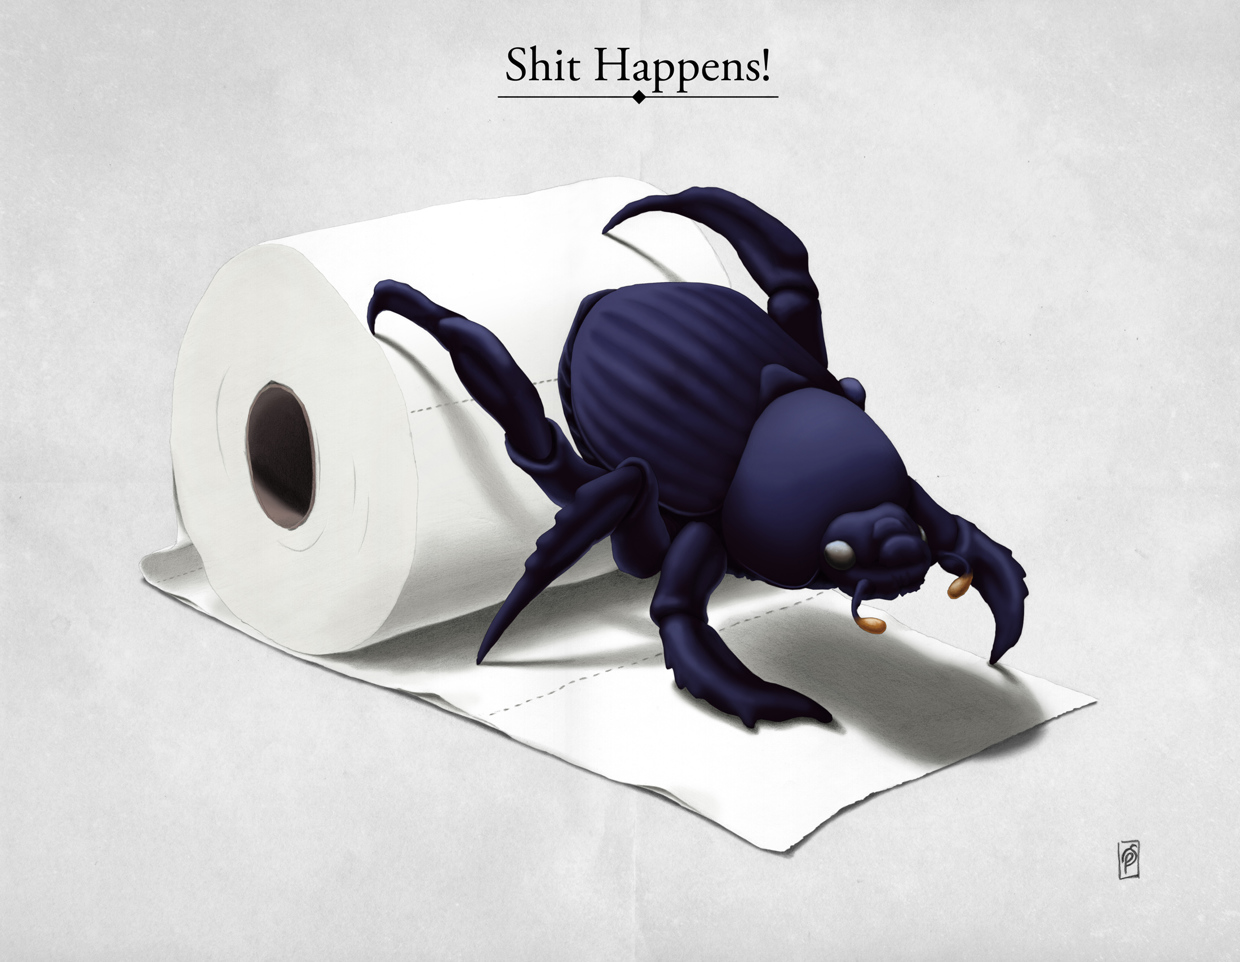 Shit Happens! - Art Print by Rob Snow